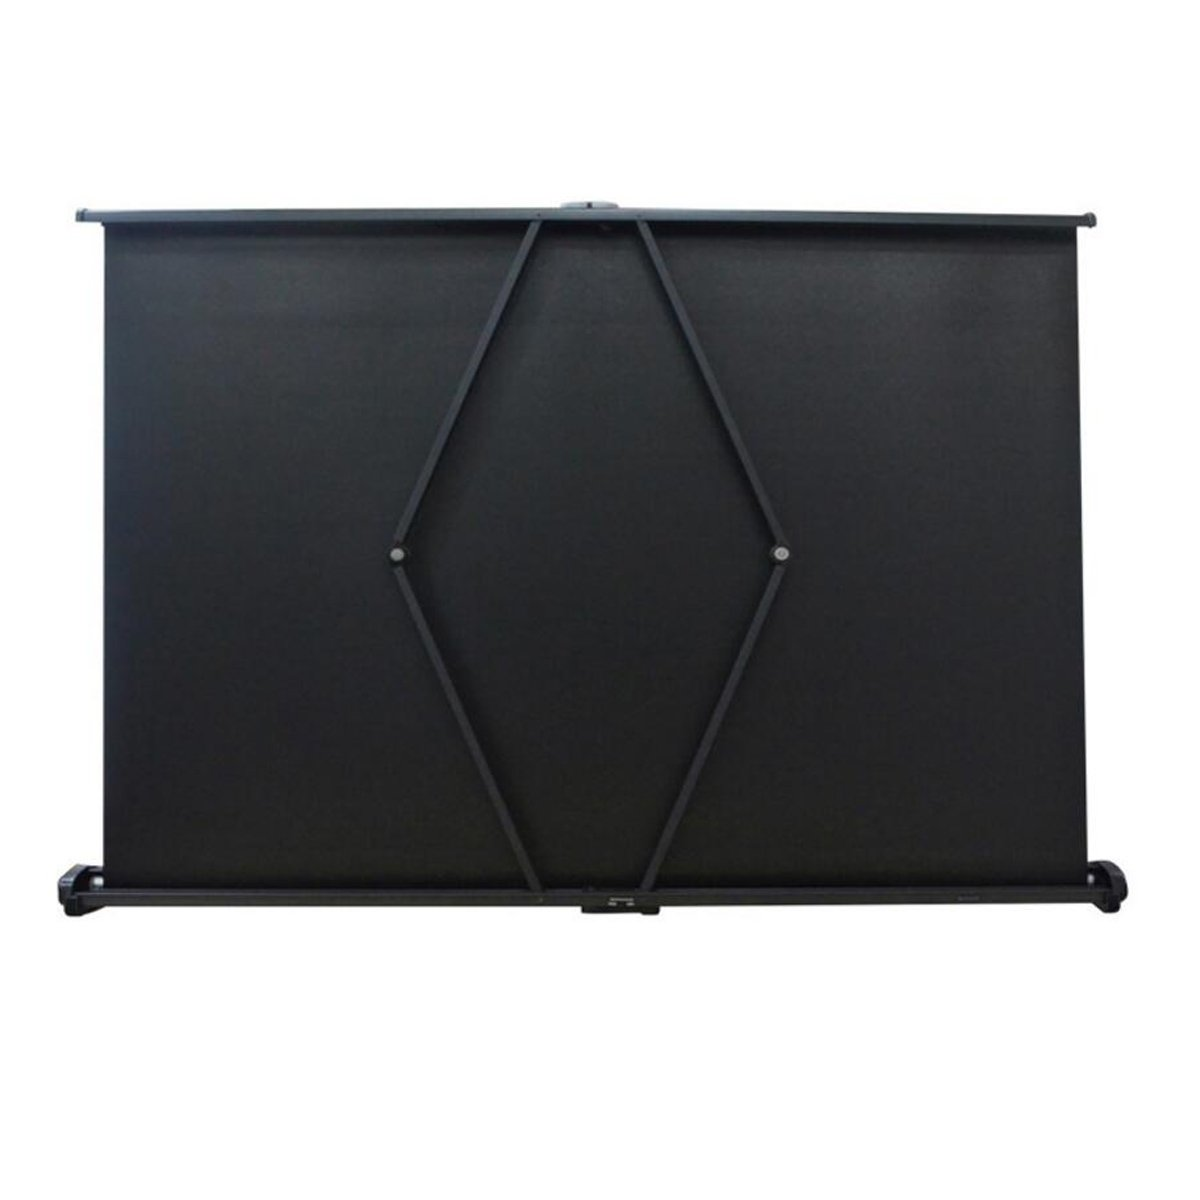 4:3//16:9 Compatiable Cocar 50 Portable Projection Screen for Mini//Professional LED//LCD//DLP Projector Self Standing Pull-Out Style Indoor Outdoor Home Cinema